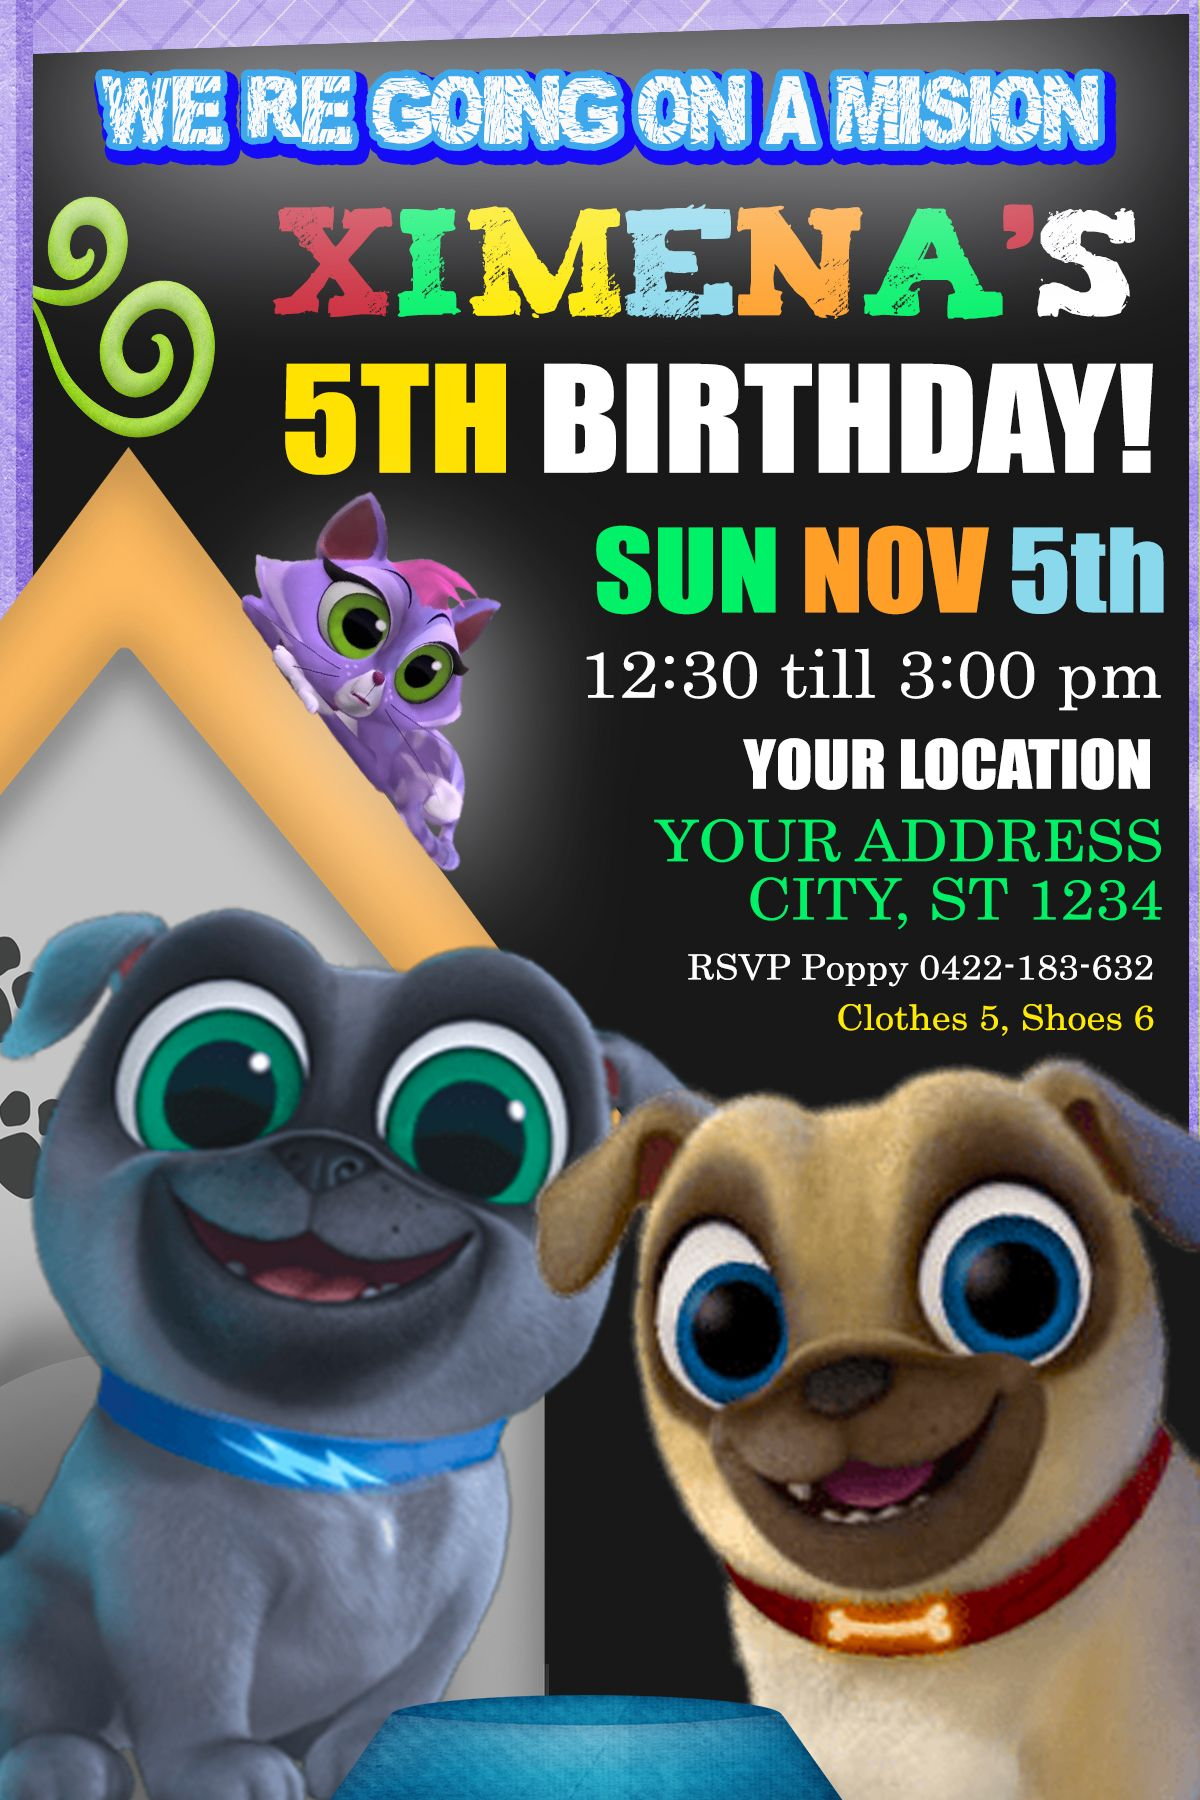 Puppy Dog Pals Birthday Party Invitation Birthday Party Invite Birthdayparty Birthdayinvitation Birth Invitaciones De Cumpleanos Invitaciones Cumpleanos